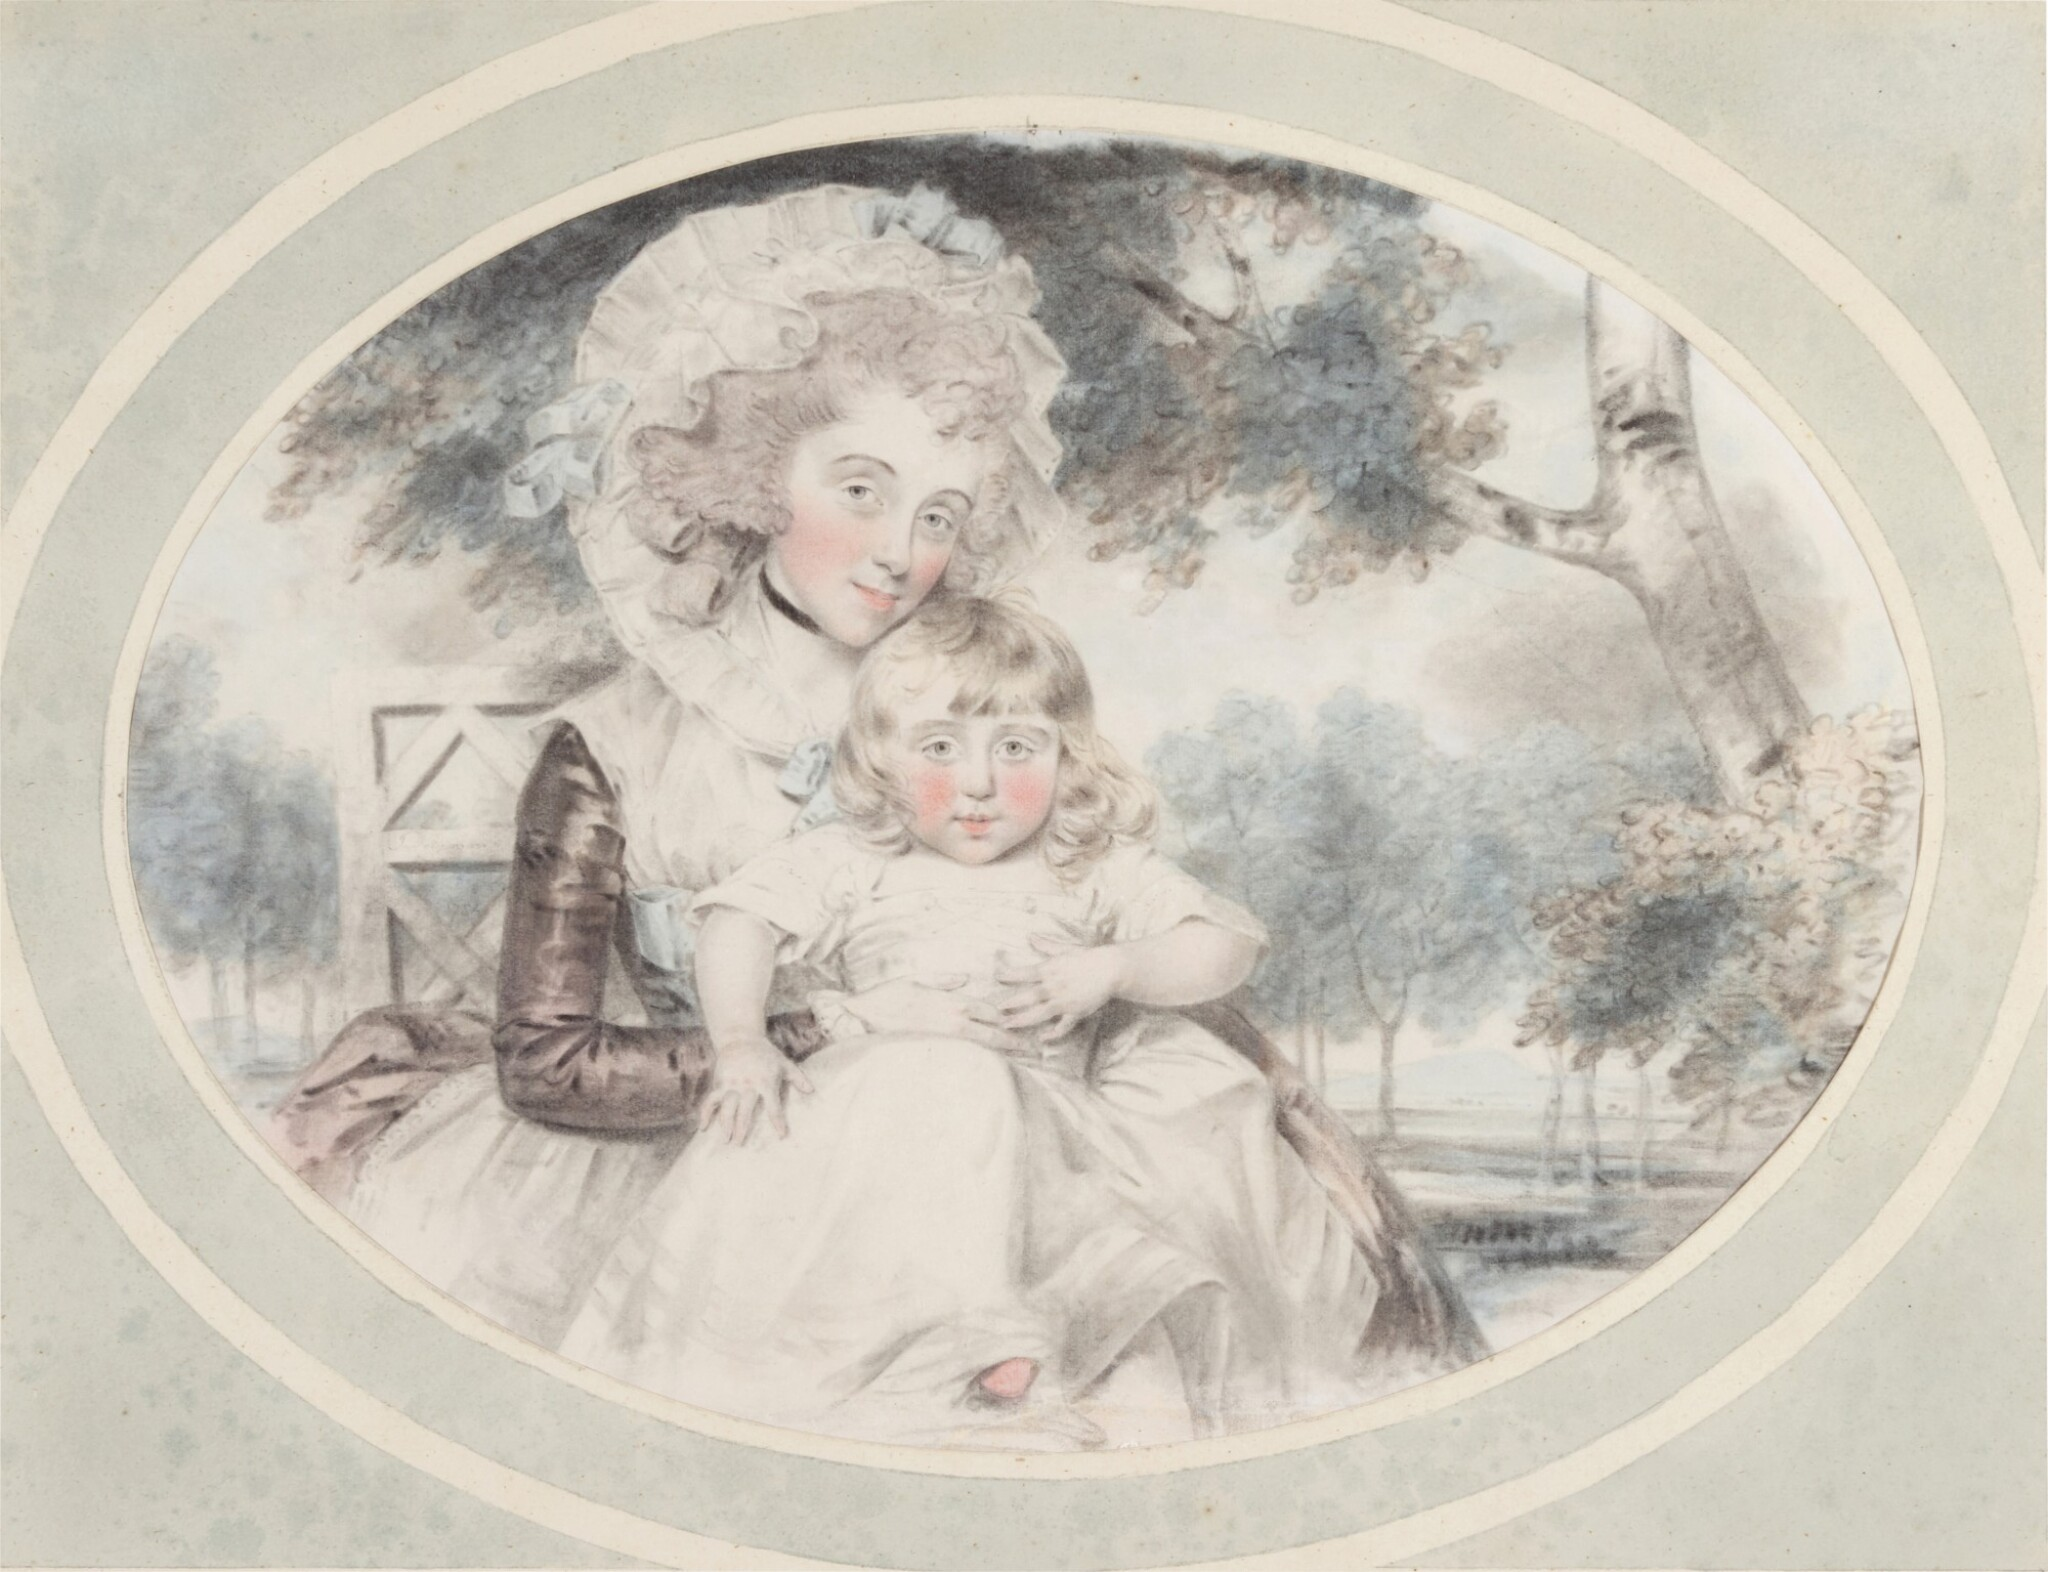 View 1 of Lot 202. A portrait of Lady Hester Lushington (1750-1830) and her son Stephen Lushington (1782-1873).